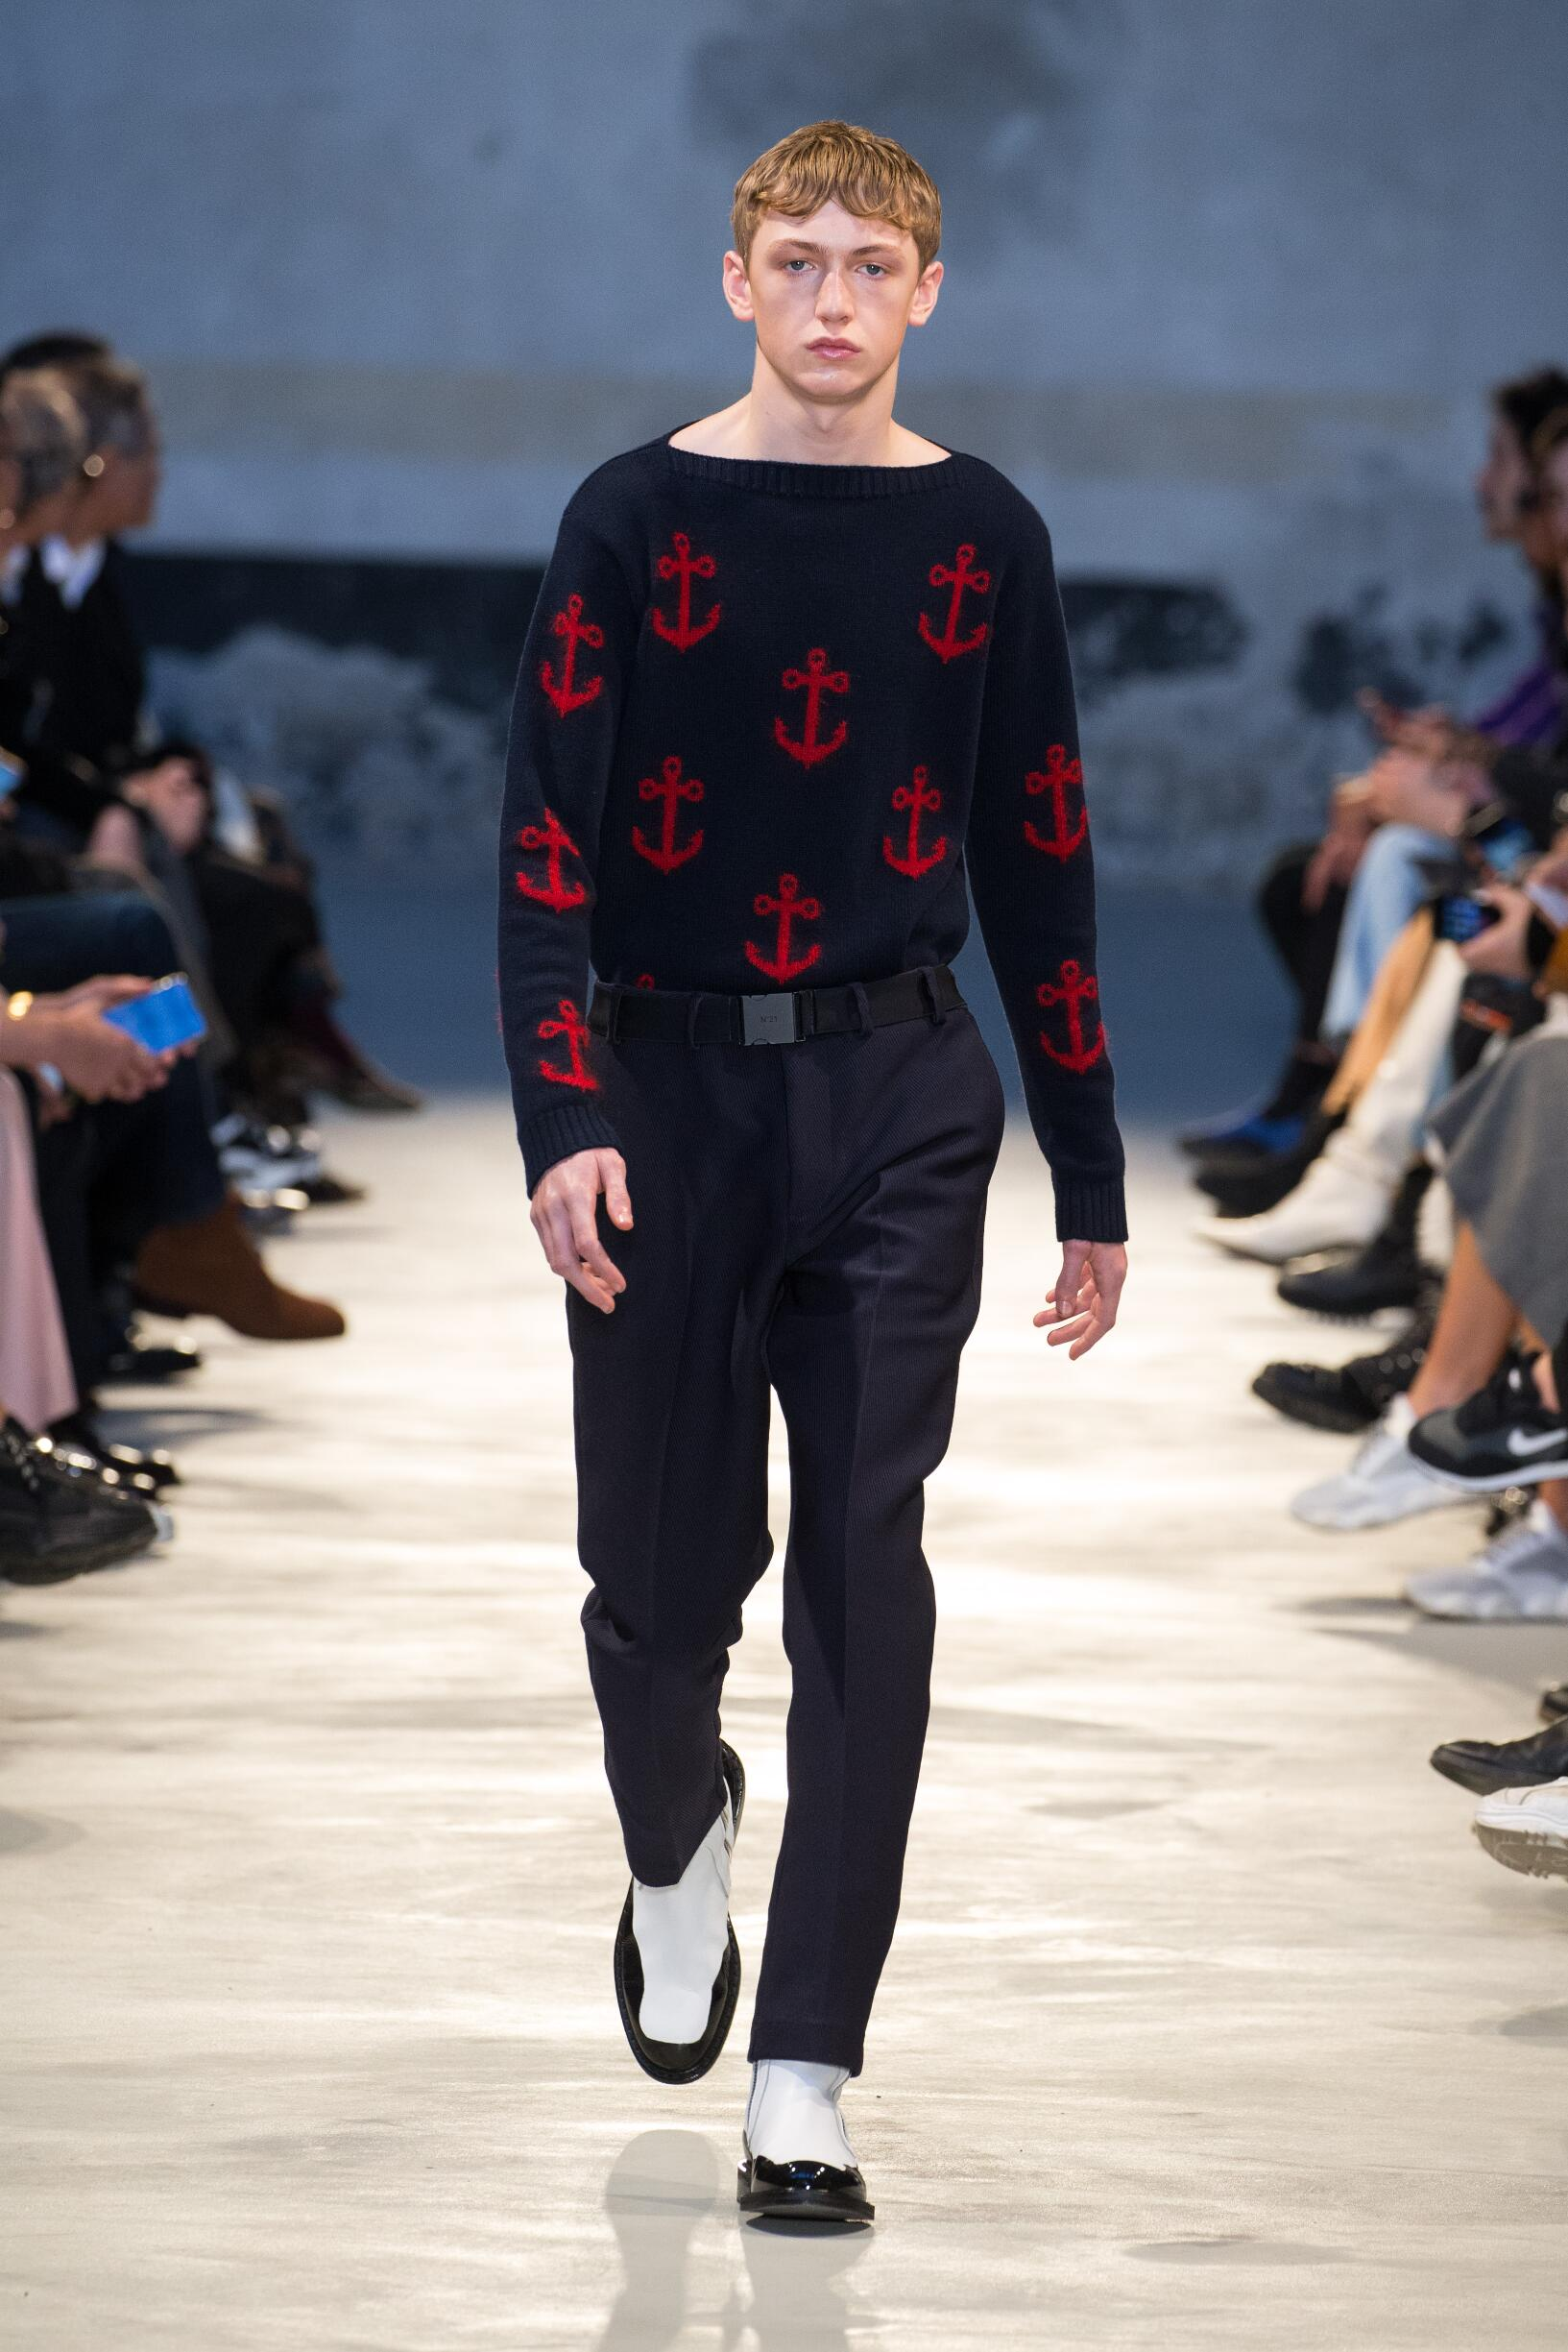 N°21 Menswear Fashion Show